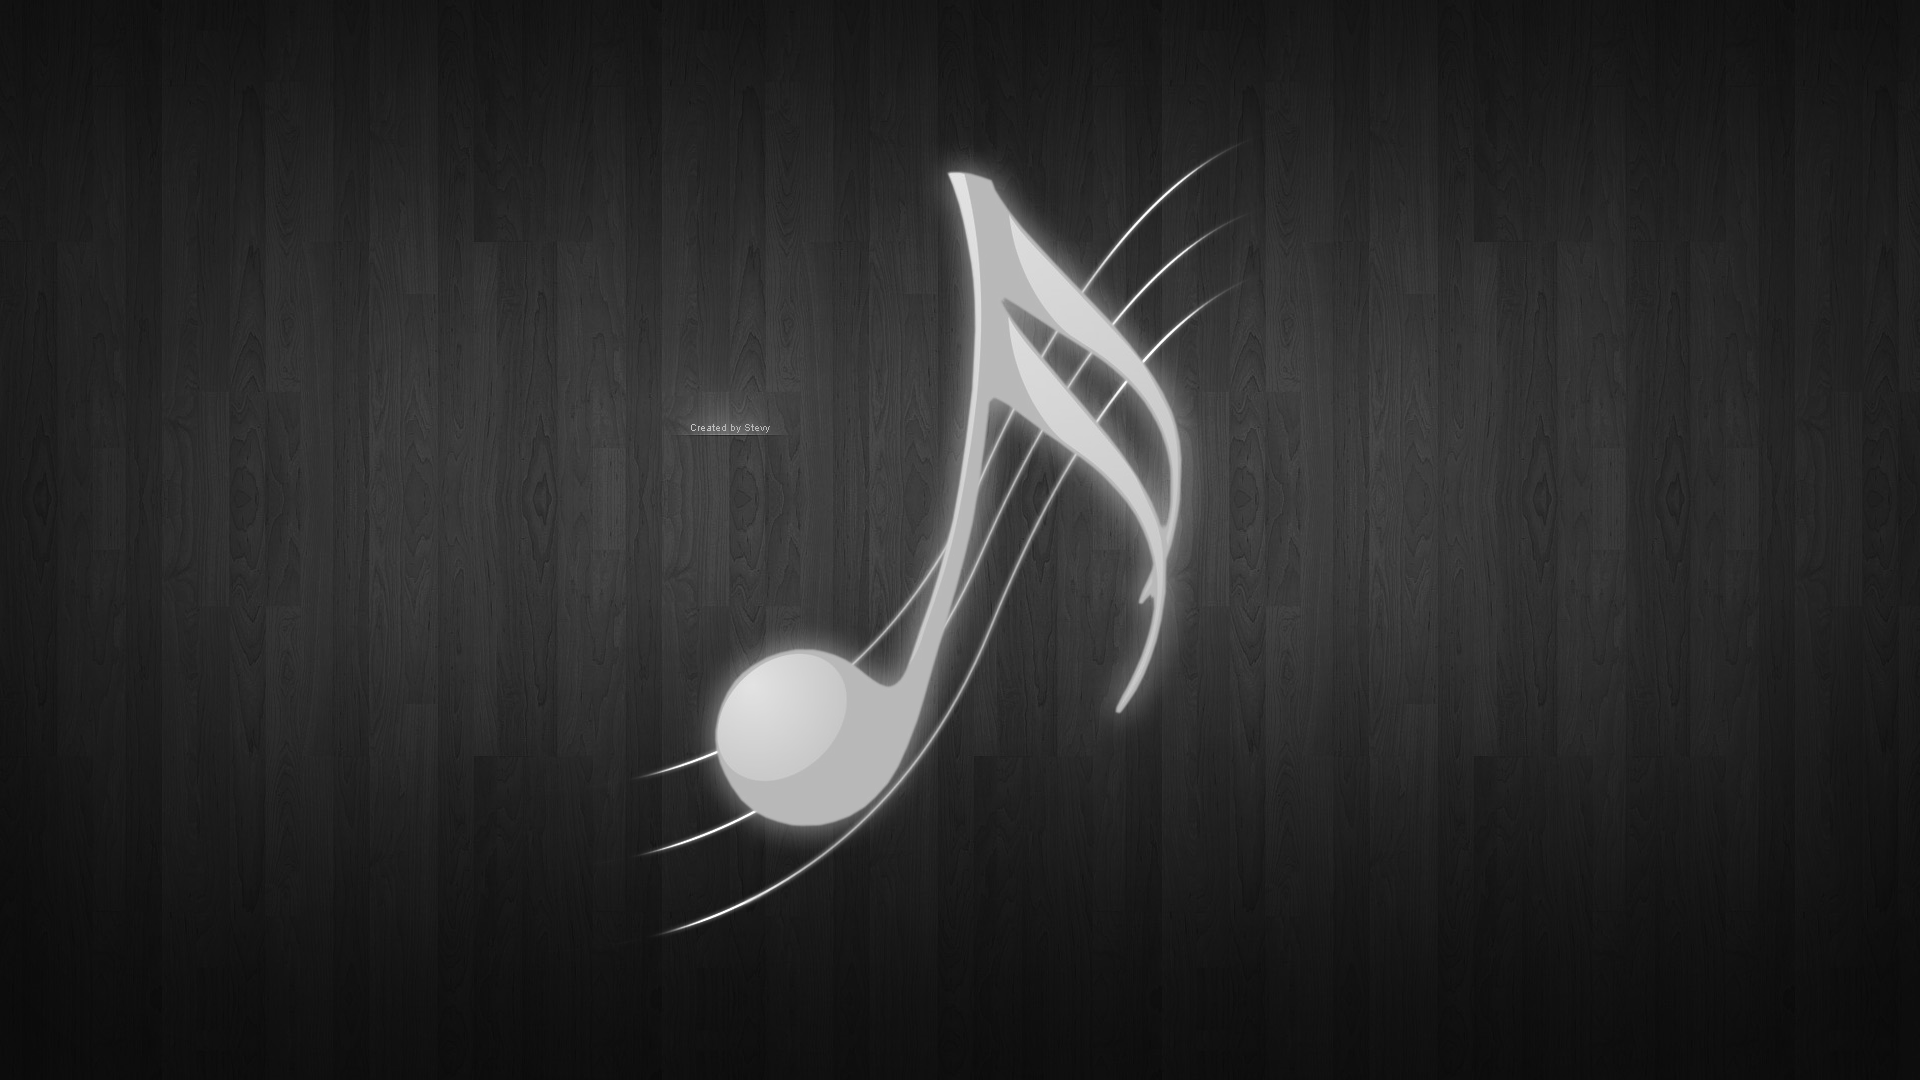 Music Wallpaper Full HD